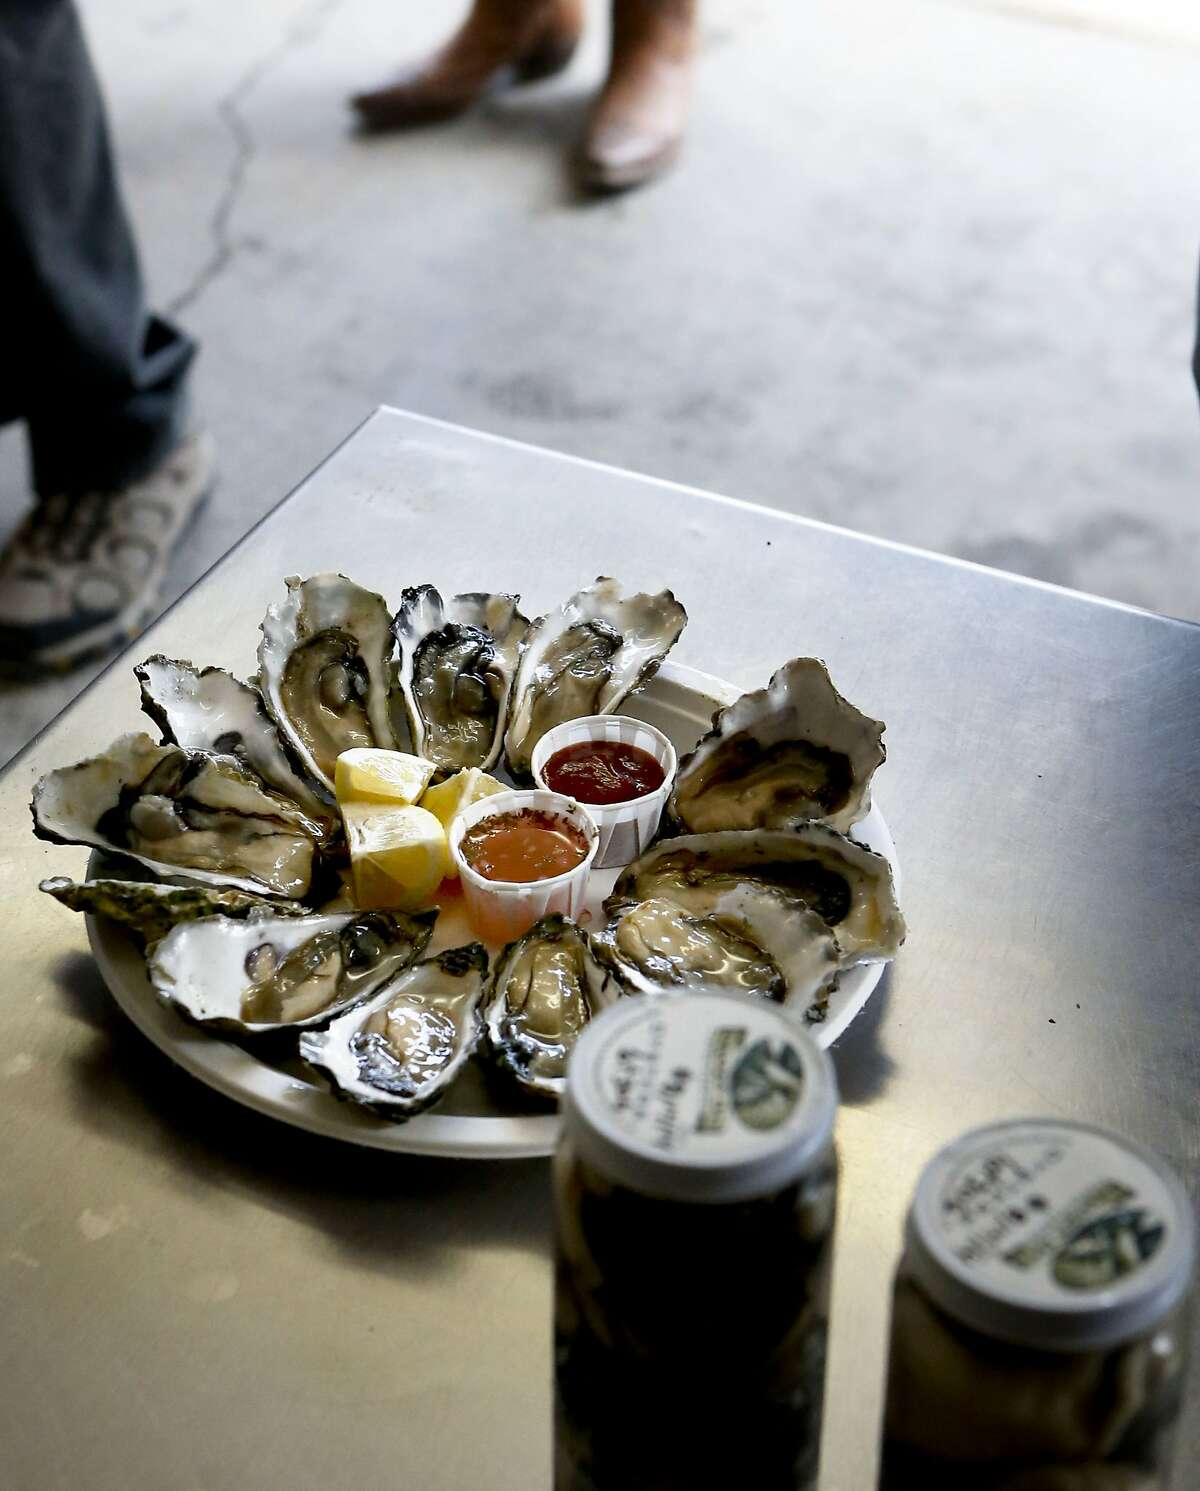 Oysters at the Drakes Bay Oyster Company as seen on Thursday July 31, 2014, in Inverness, Calif. The final day that the public can purchase oysters from the Drake's Bay Oyster Company as their lease expires with the National Park Service and the area reverts to a marine sanctuary.